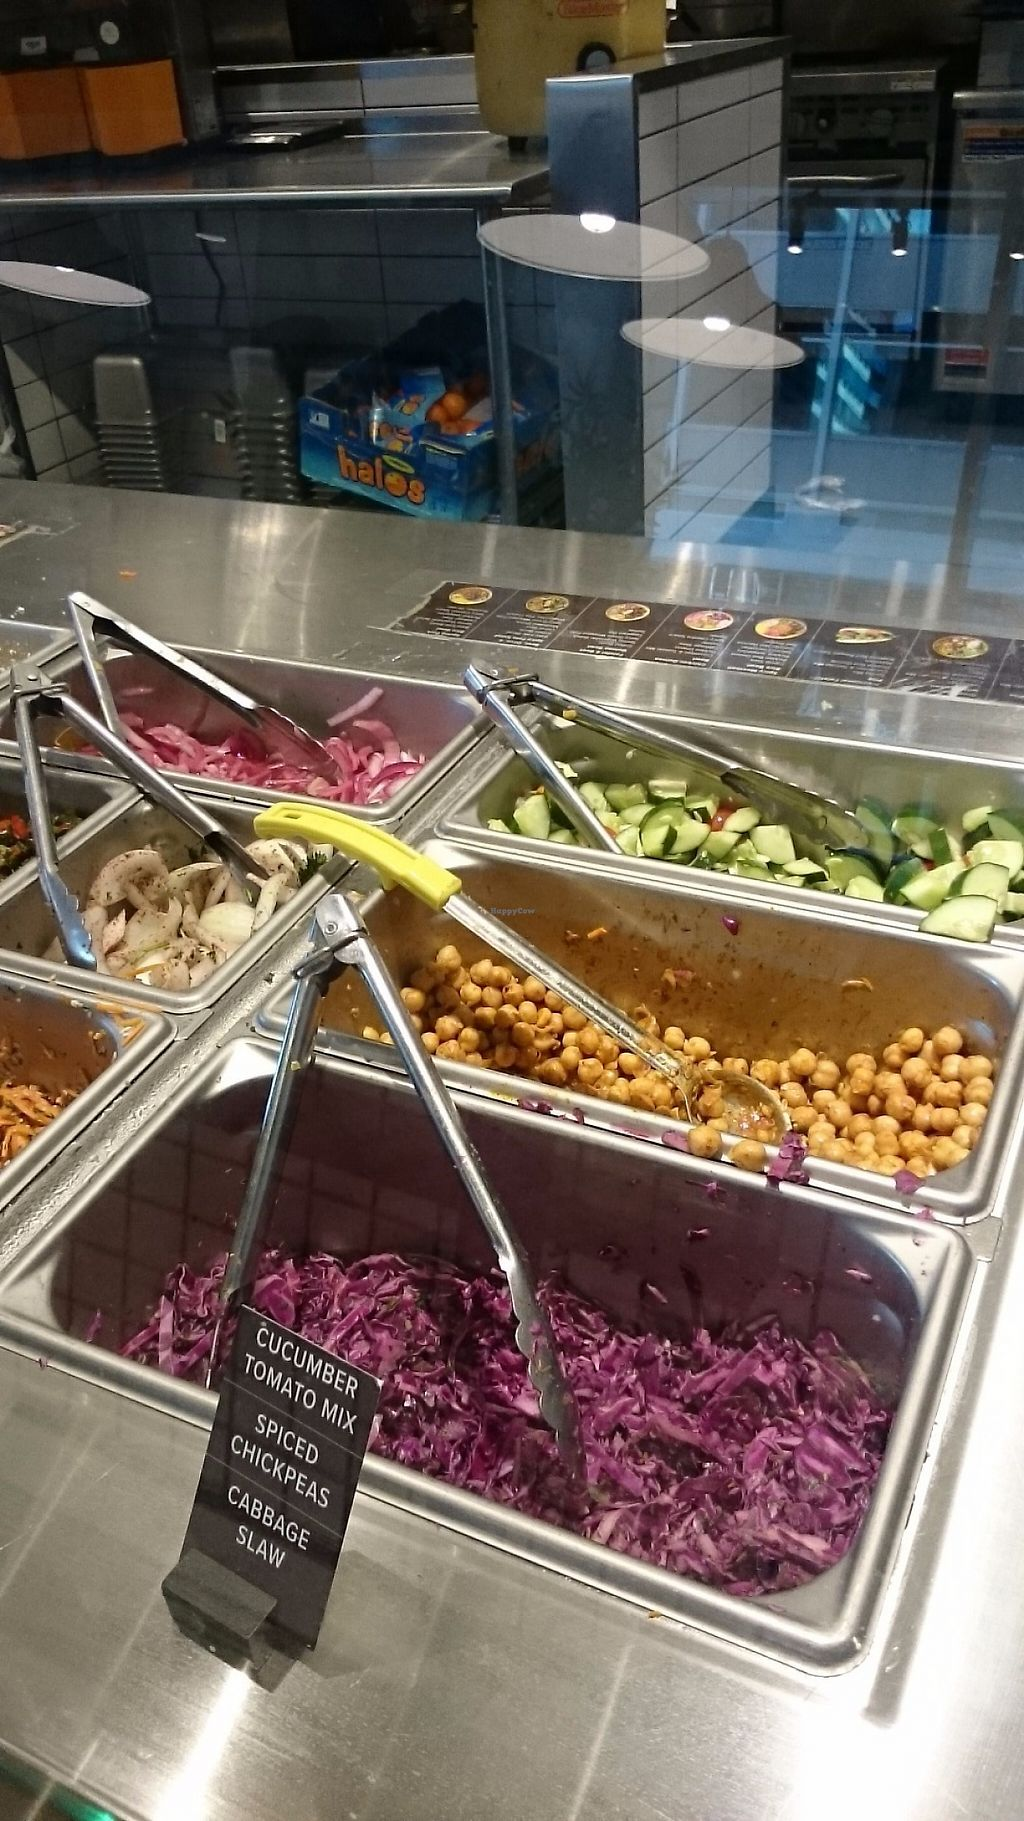 """Photo of Noon Mediterranean  by <a href=""""/members/profile/ZoraySpielvogel"""">ZoraySpielvogel</a> <br/>Vegan section of the salad bar <br/> May 31, 2017  - <a href='/contact/abuse/image/89544/264556'>Report</a>"""